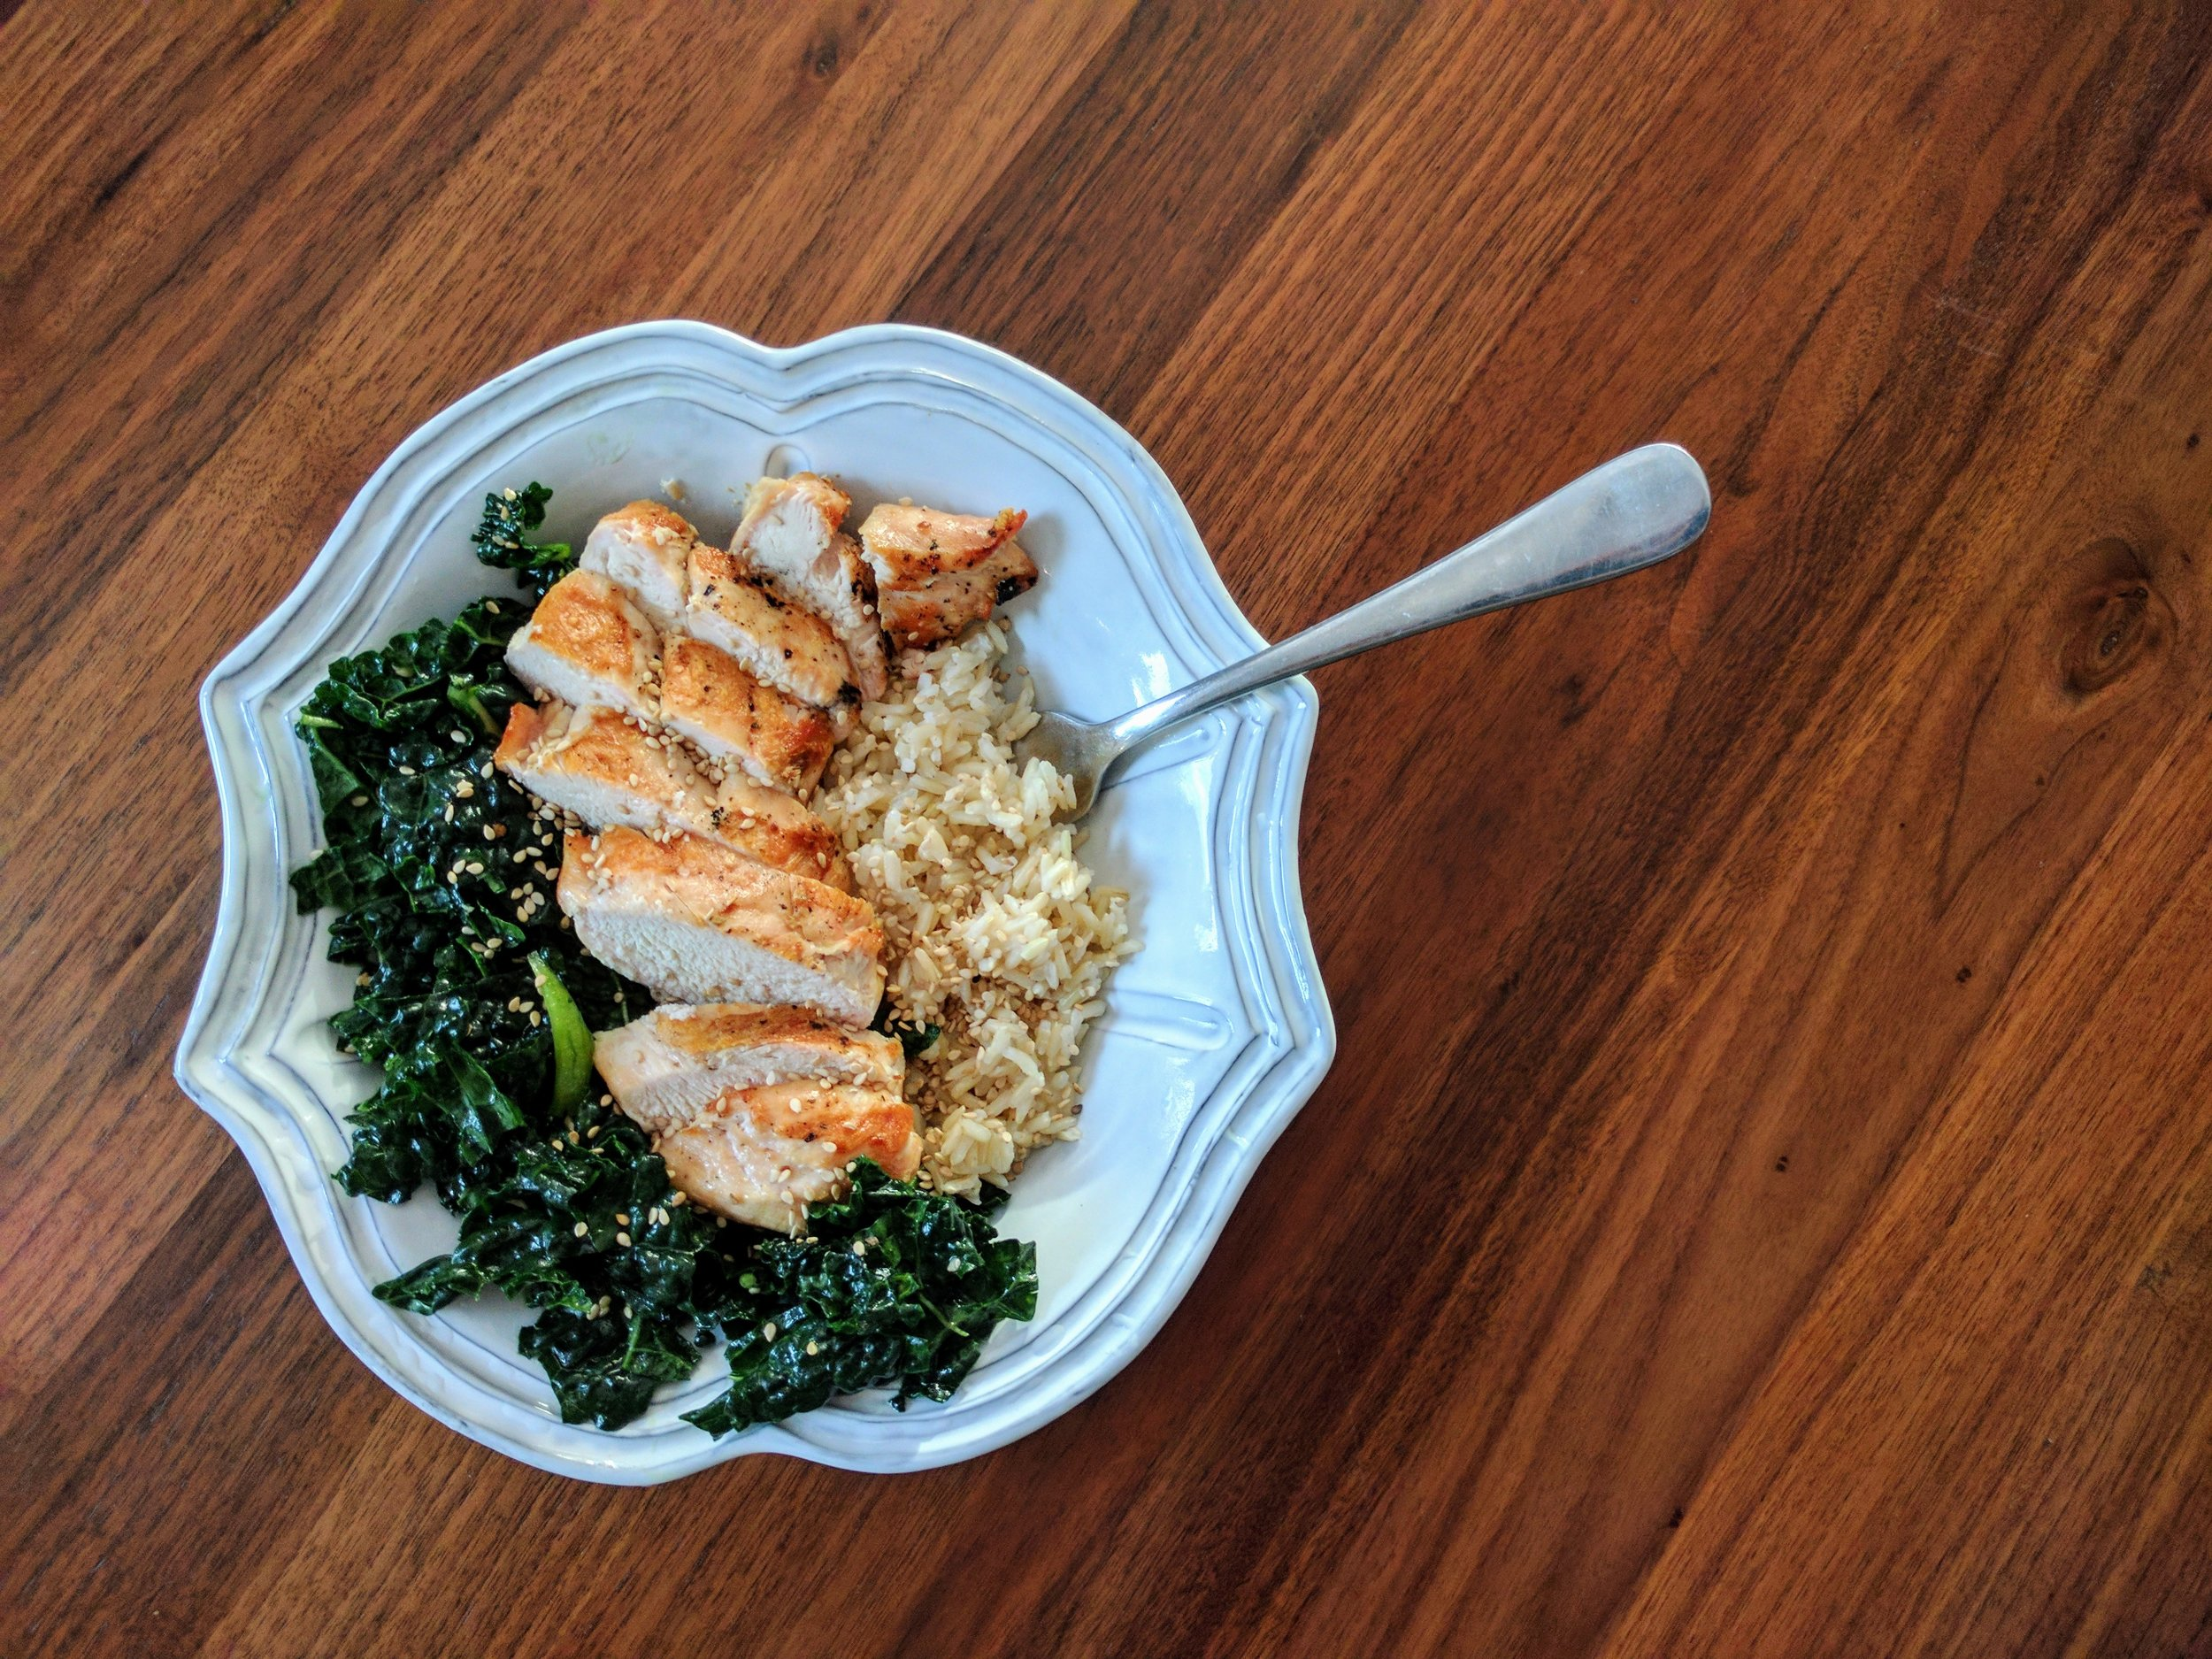 Lemony Kale Salad with Chicken and Rice